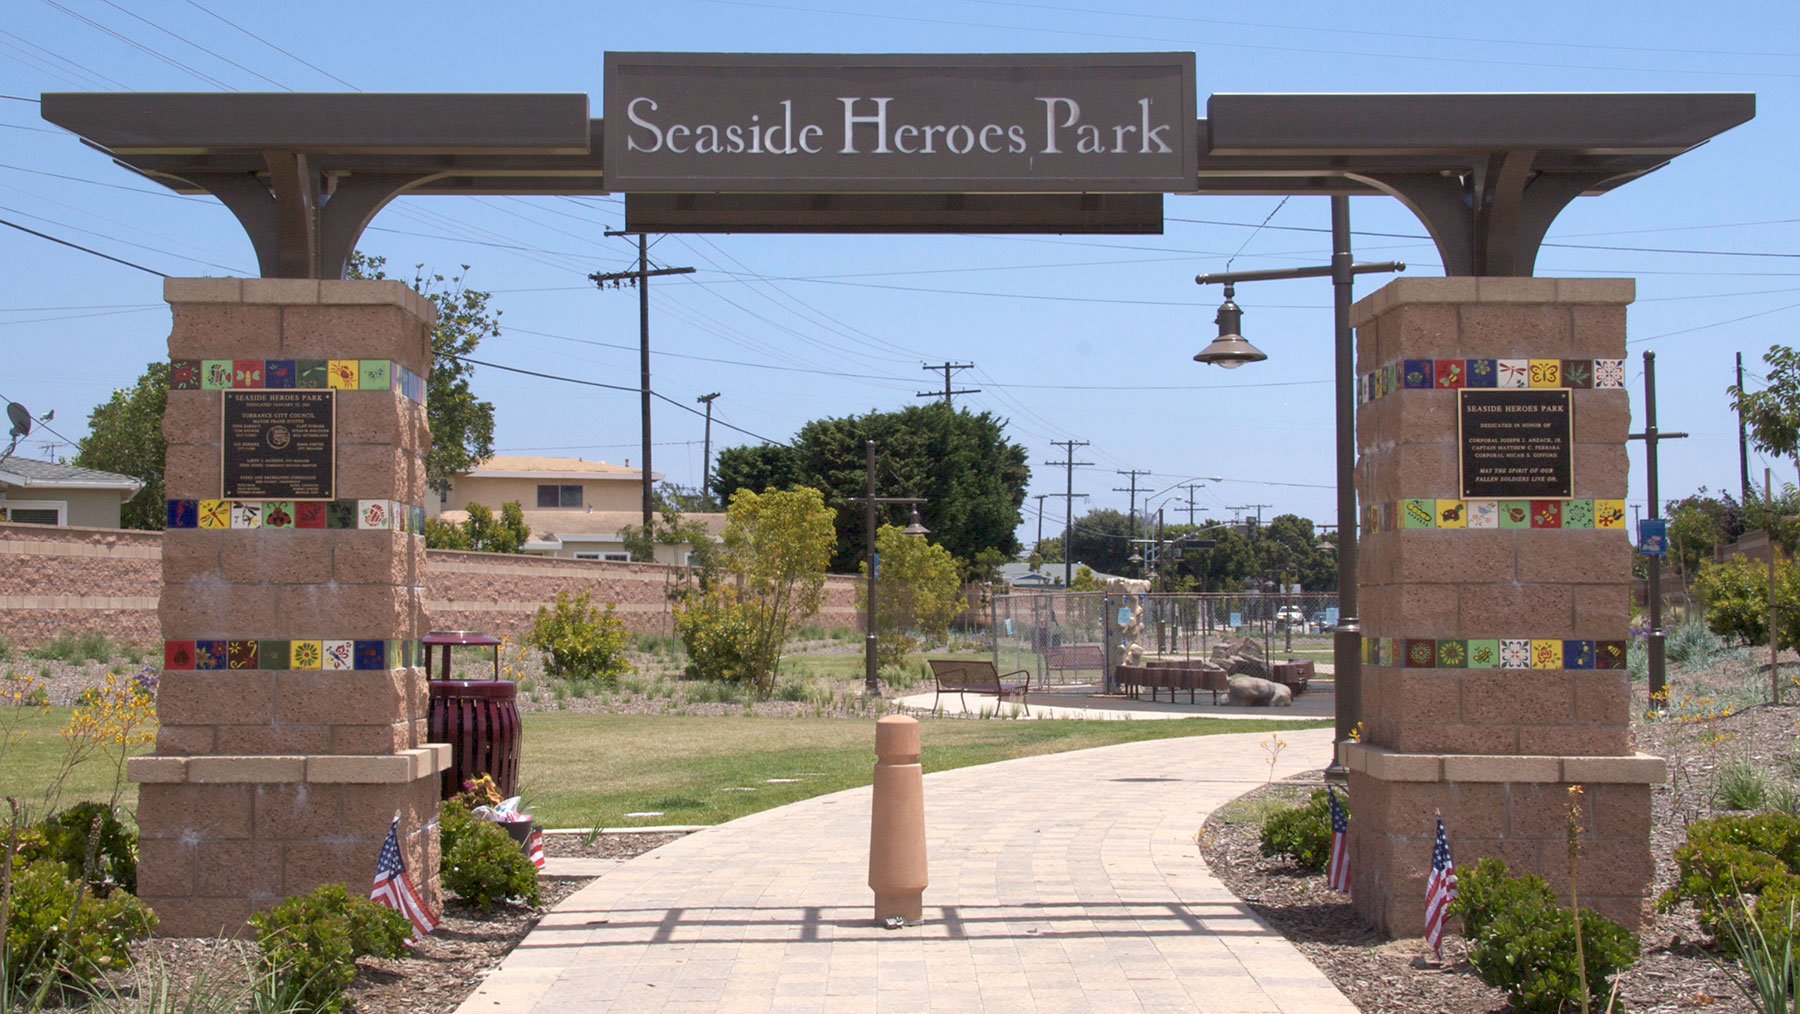 Seaside Heroes Park Entrance